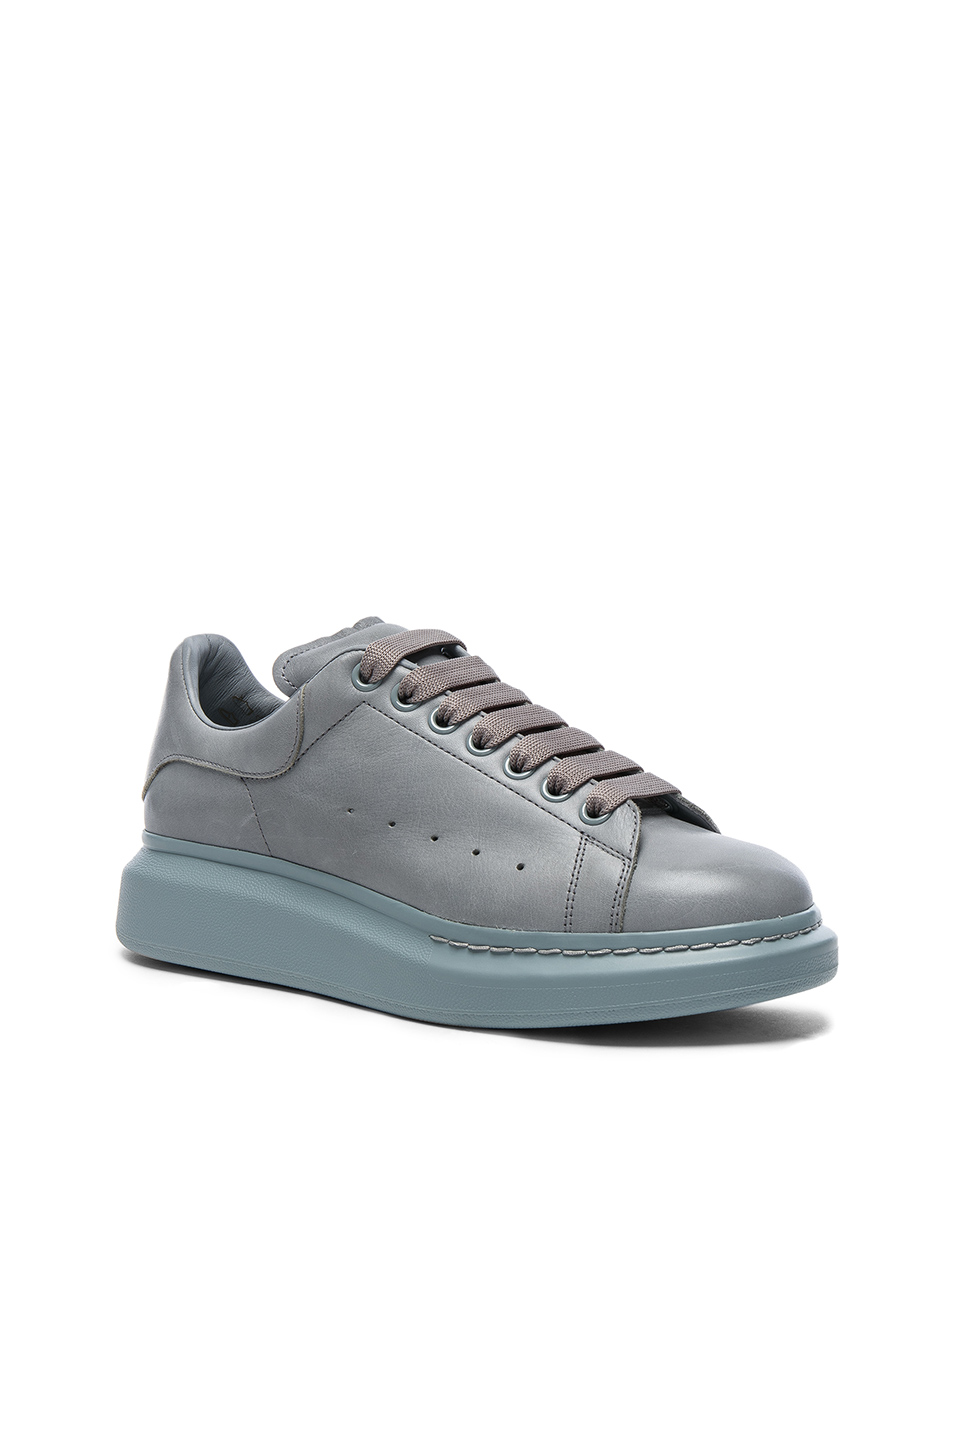 Alexander McQueen Leather Platform Sneakers in Gray